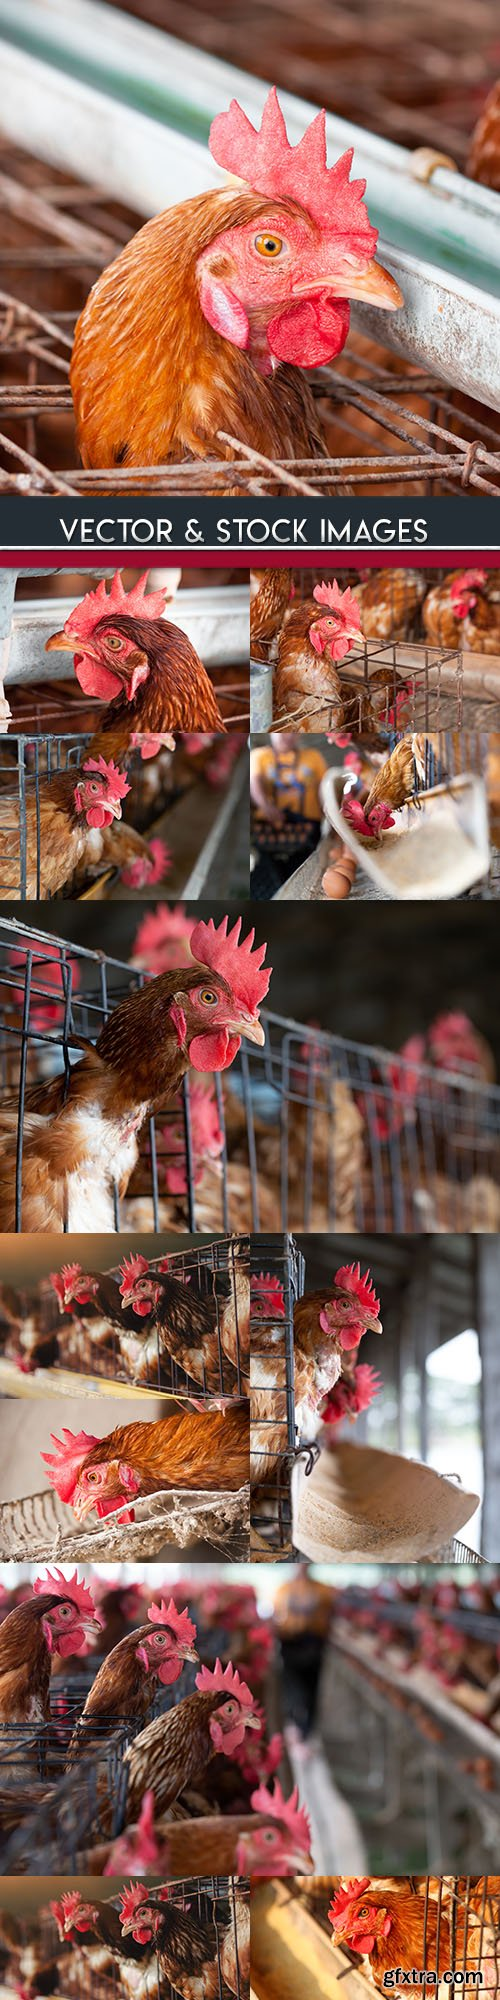 Hens farm and production of egg and meat